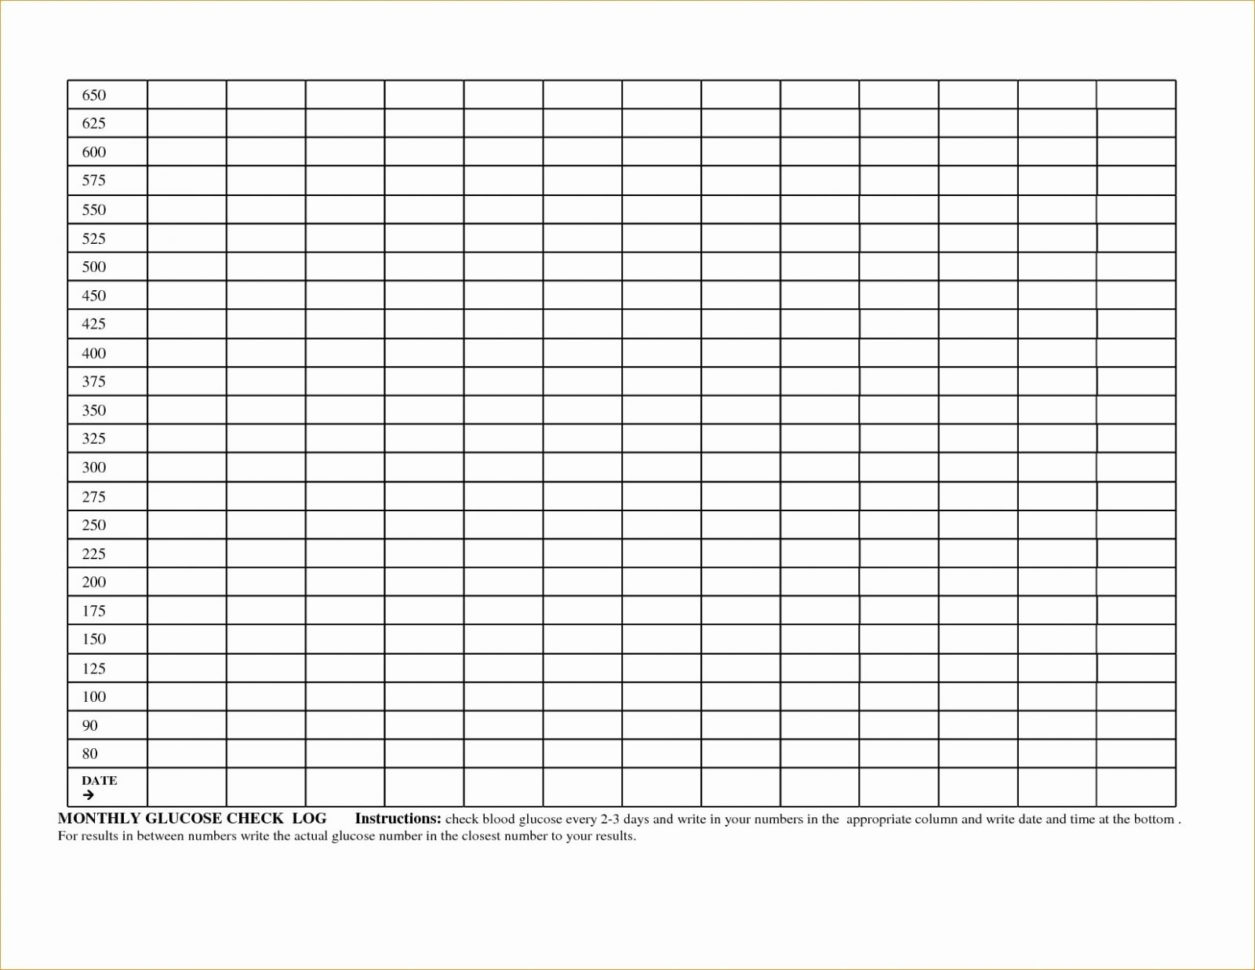 diabetes food log spreadsheet gestational diabetes food log printable diabetes food log printable  Diabetes Food Log Spreadsheet Throughout Diabetes Log Sheet Monthly Fresh Printable Sheets Guvecurid Of Diabetes Food Log Spreadsheet Printable Spreadshee